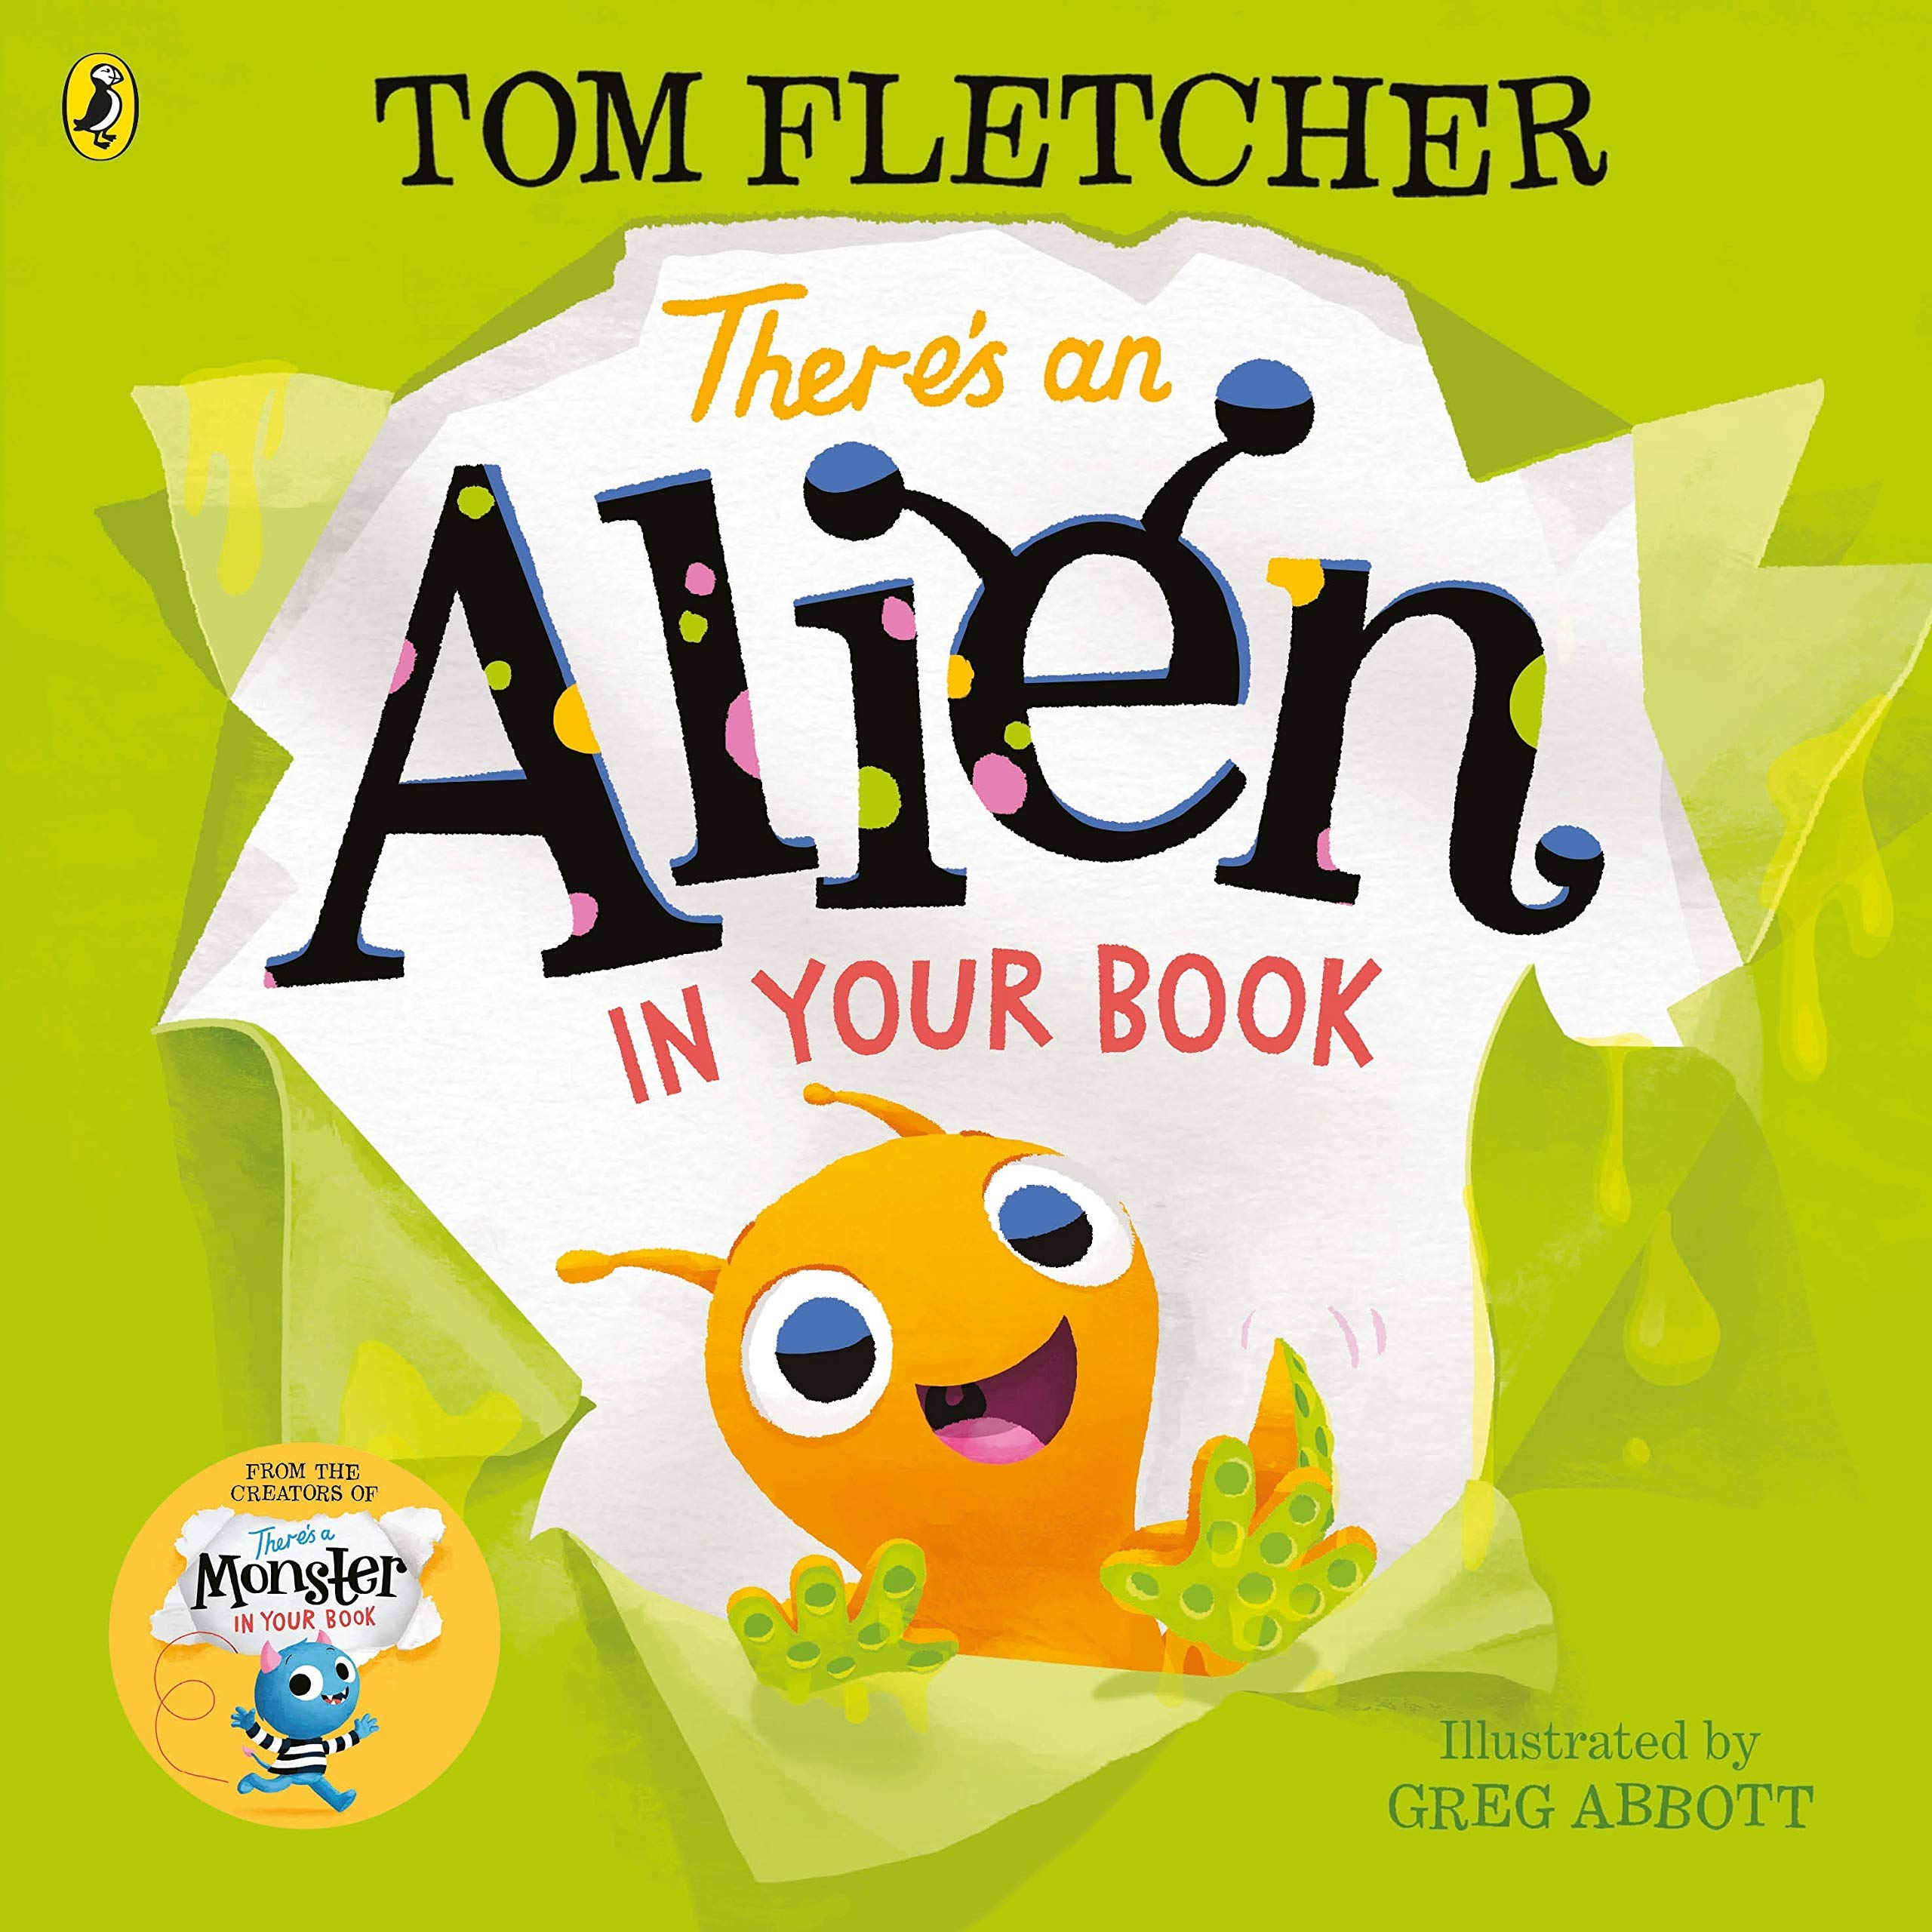 Cover: Tom Fletcher There's an Alien in your book